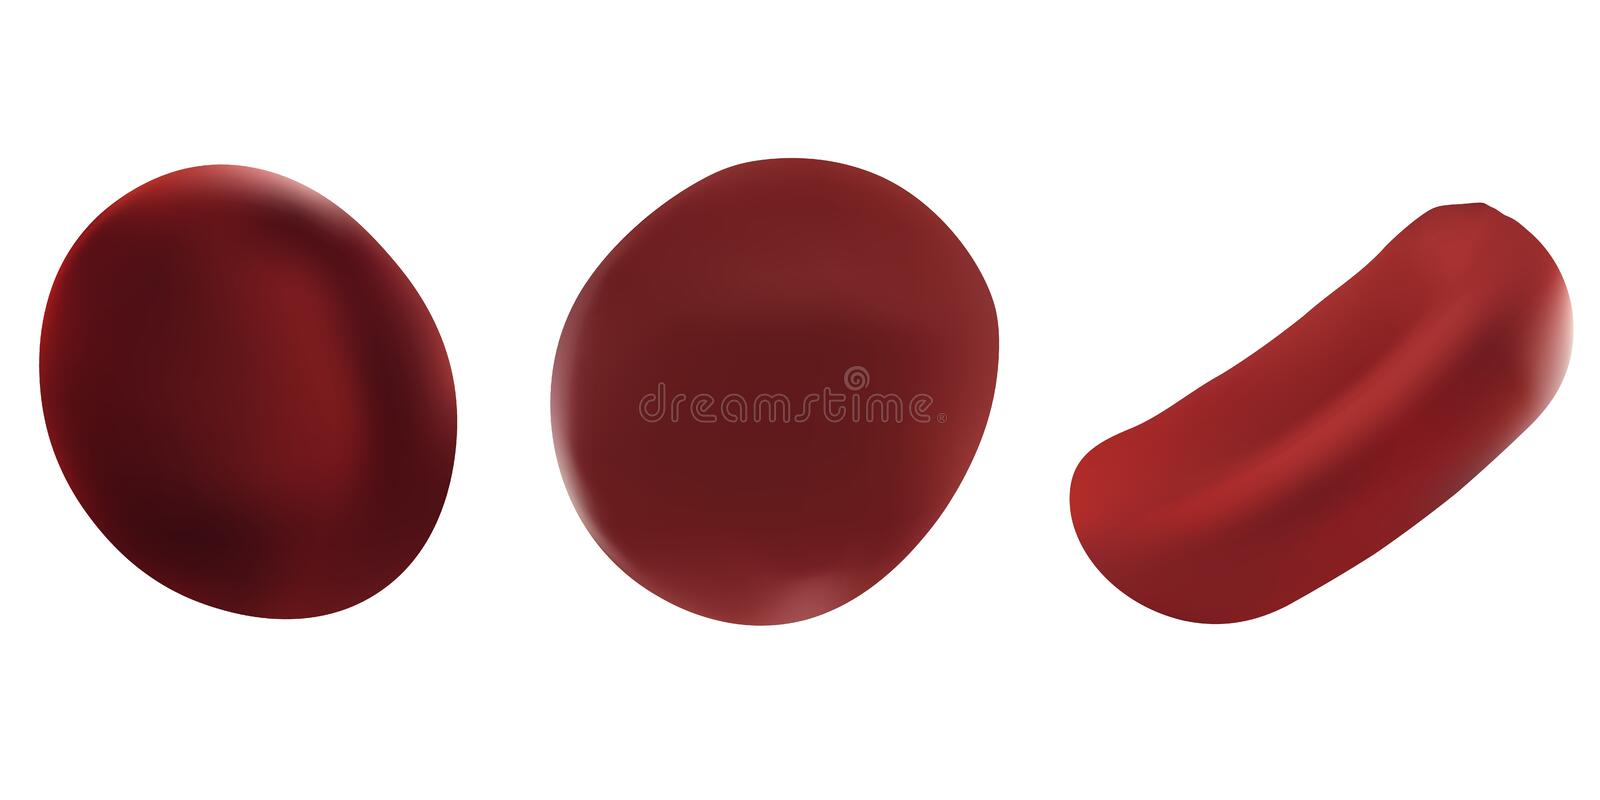 Realistic vector illustrations set red blood cell. Scientific concept. Red blood cells isolated on white background stock illustration